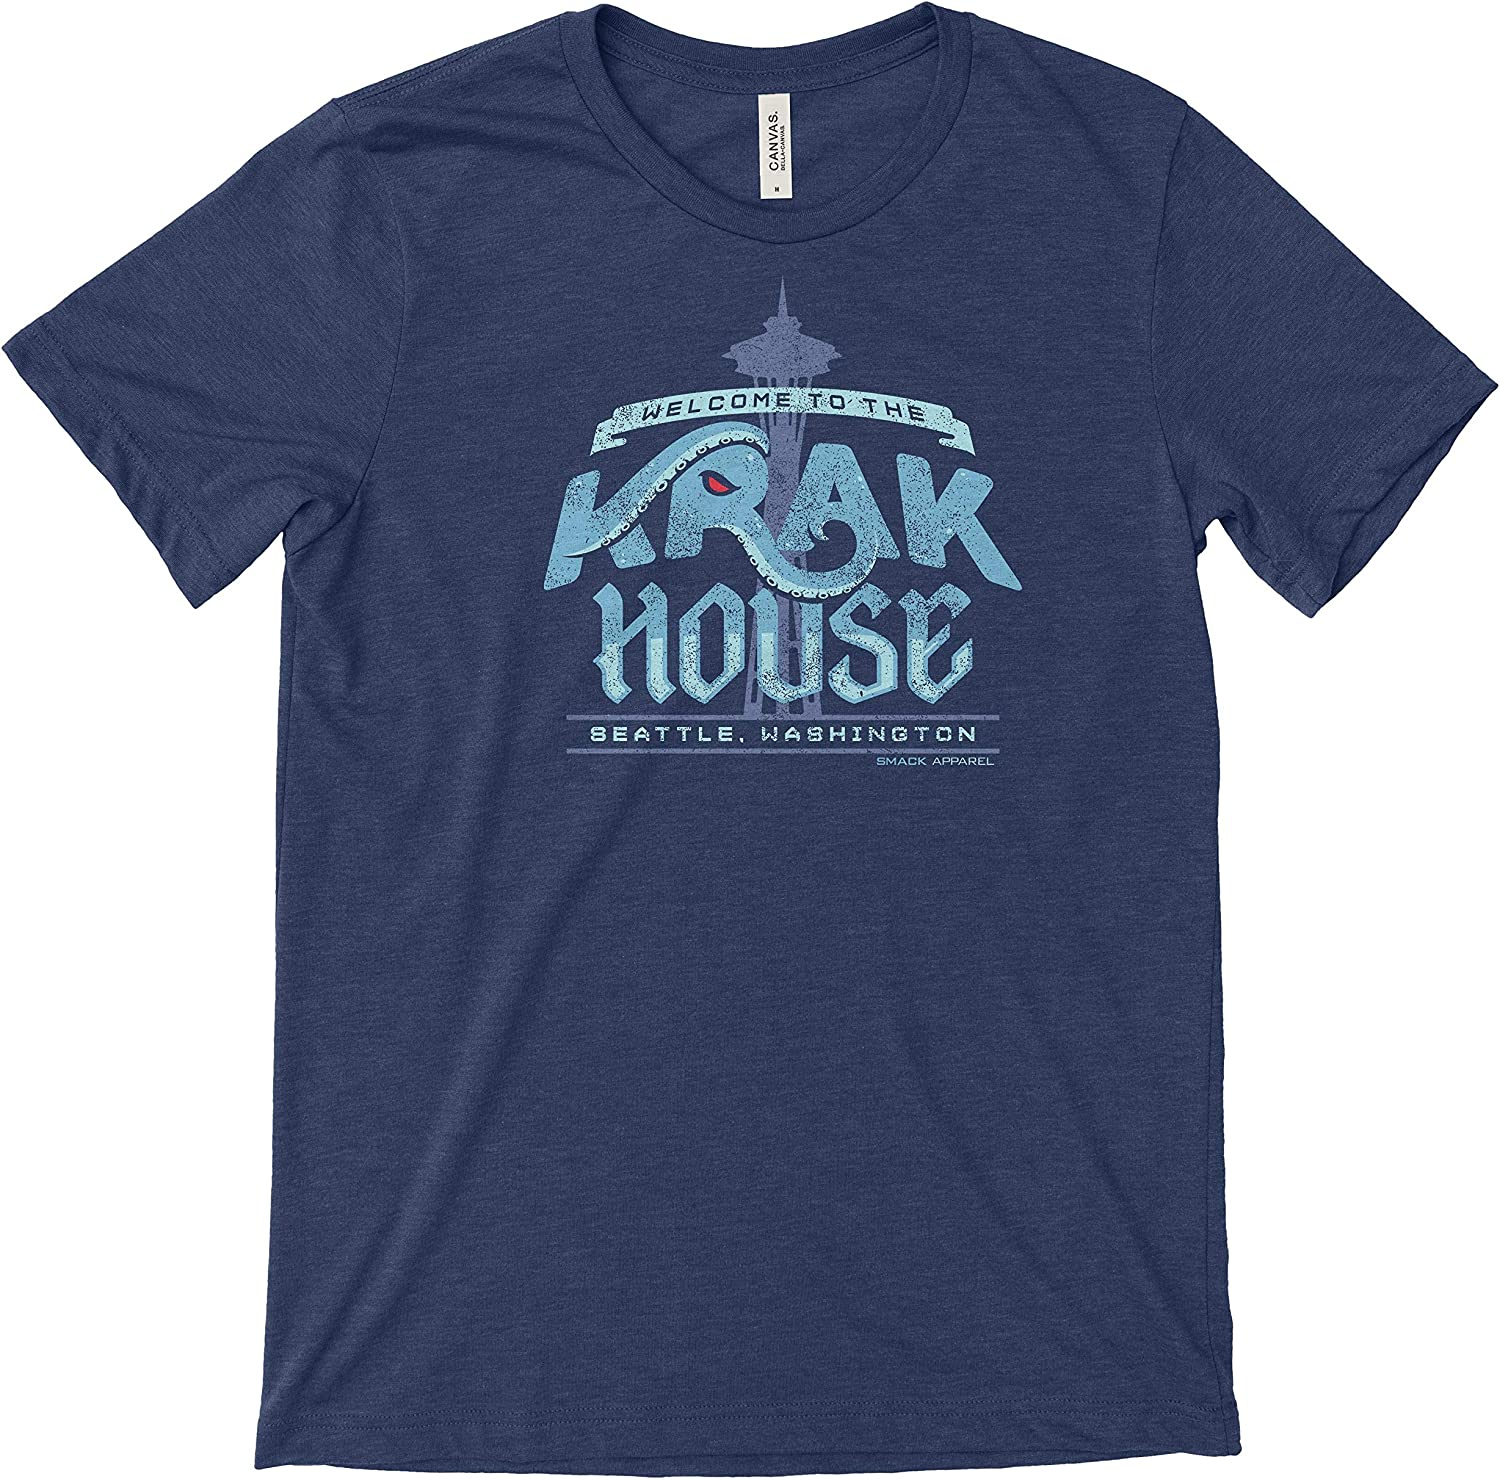 Smack Apparel Seattle Hockey Fans Heather Navy T-Shirt Welcome to The Krak House Sm-5X